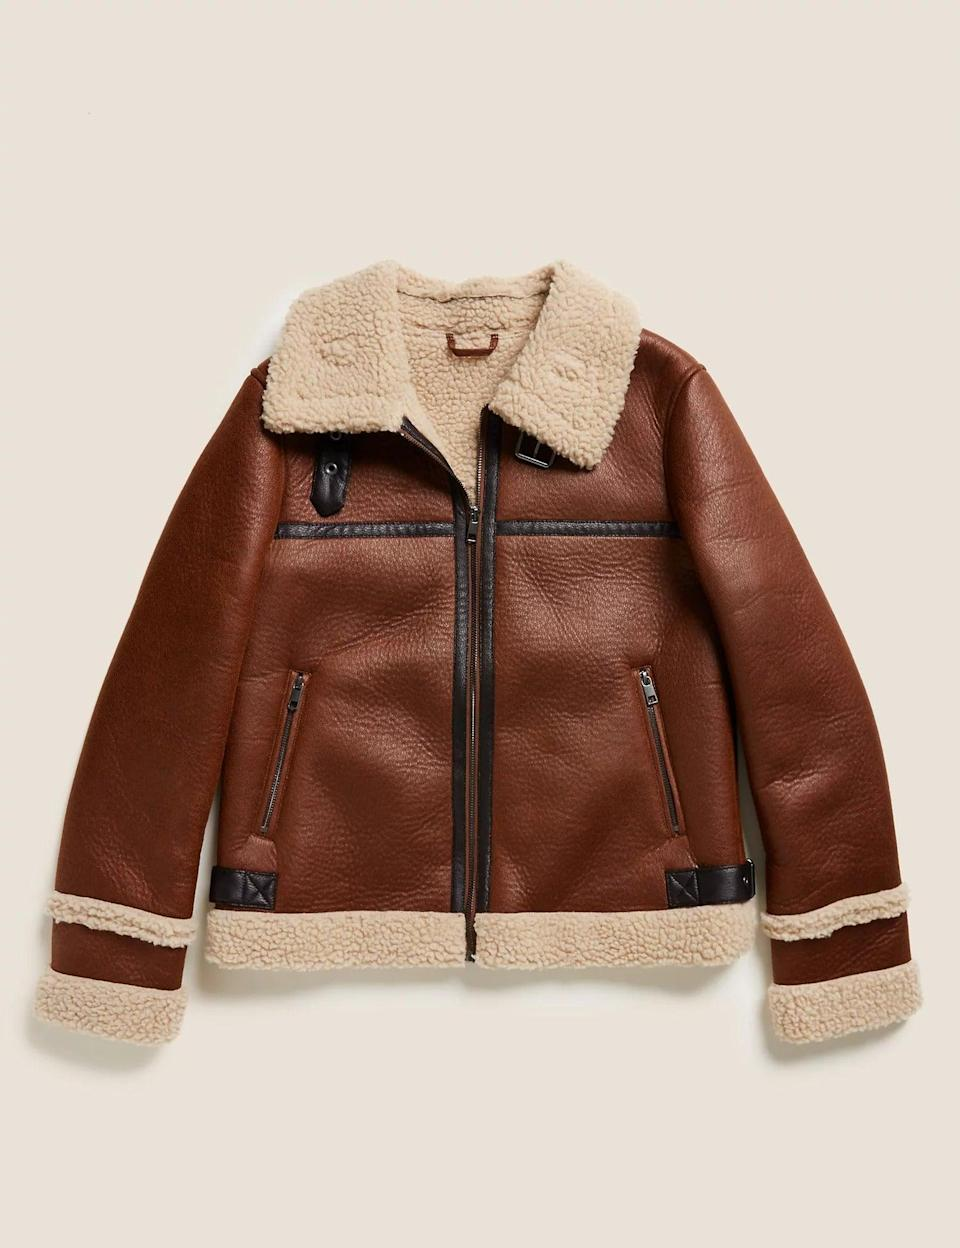 """<br><br><strong>M&S Collection</strong> Faux Shearling Aviator Jacket, $, available at <a href=""""https://www.marksandspencer.com/faux-shearling-borg-lined-biker-jacket/p/clp60454311?extid=ps_ps-gpla_ggl_ww_ch__-_UK_-_-_&gclsrc=aw.ds&&gclid=Cj0KCQjw28T8BRDbARIsAEOMBcy1m7YnuKOKN_yGwd9cGFuSMRTlxsrYUYtbrSAE2o8pHA66BHk784waArR7EALw_wcB&gclsrc=aw.ds"""" rel=""""nofollow noopener"""" target=""""_blank"""" data-ylk=""""slk:M&S, Marks & Spencer"""" class=""""link rapid-noclick-resp"""">M&S, Marks & Spencer</a>"""